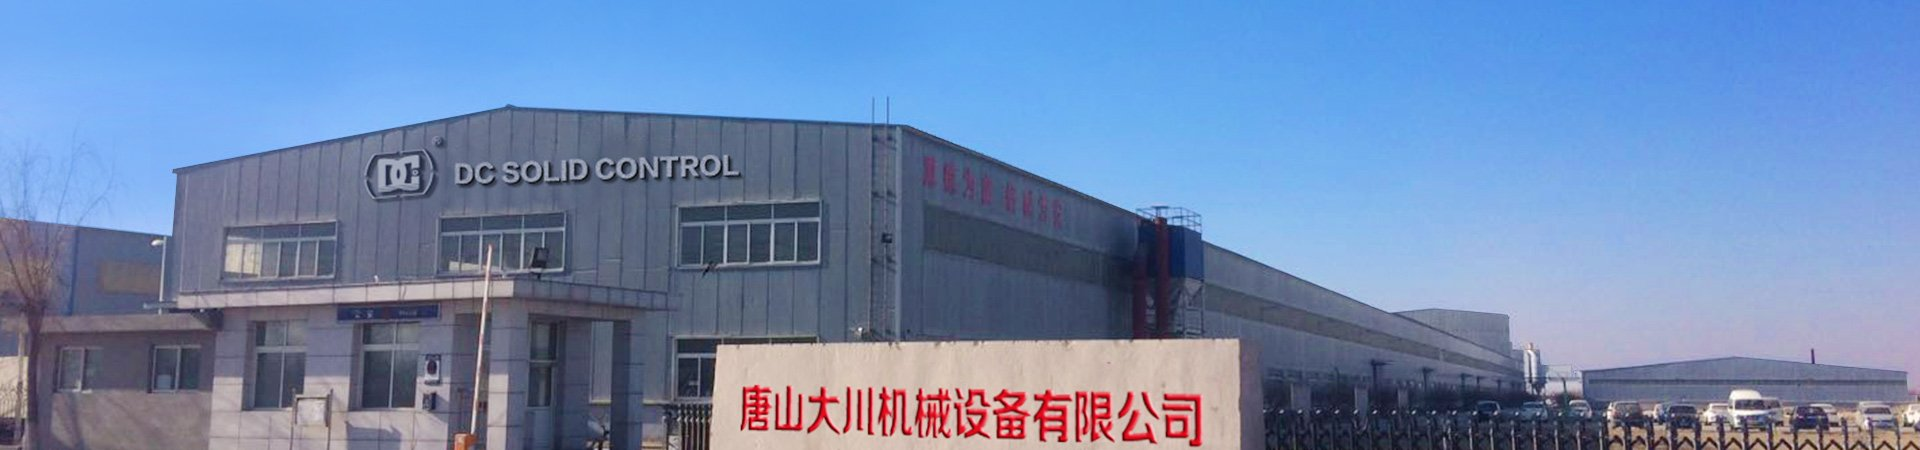 TangShan Dachuan Mechanical Equipment Co., Ltd.